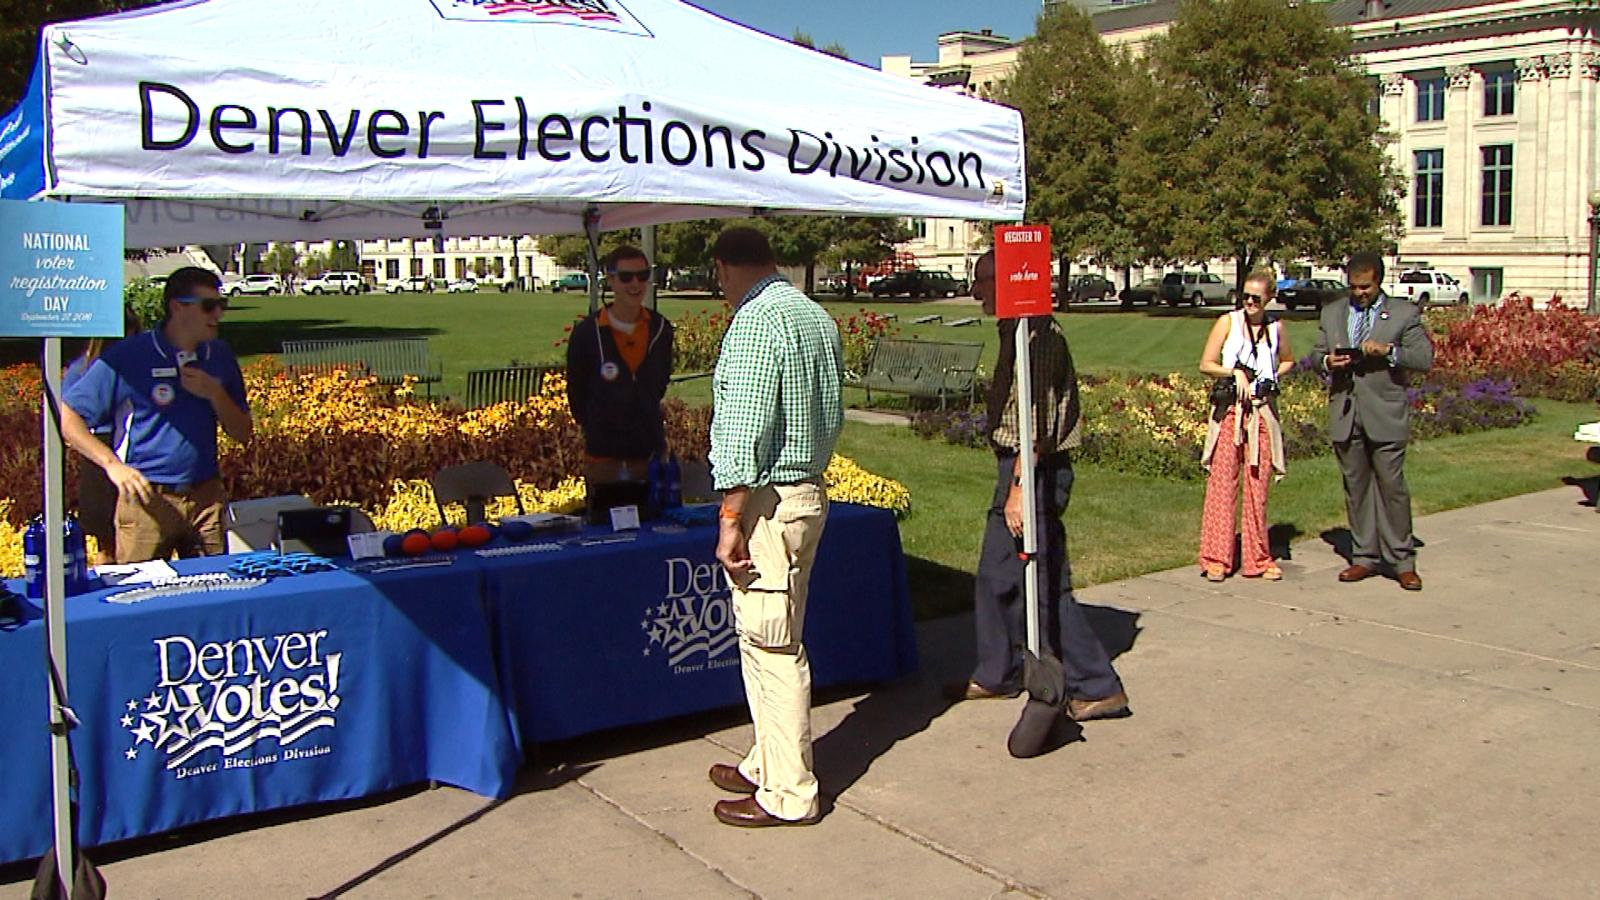 A tent in Civic Center Park (credit: CBS)